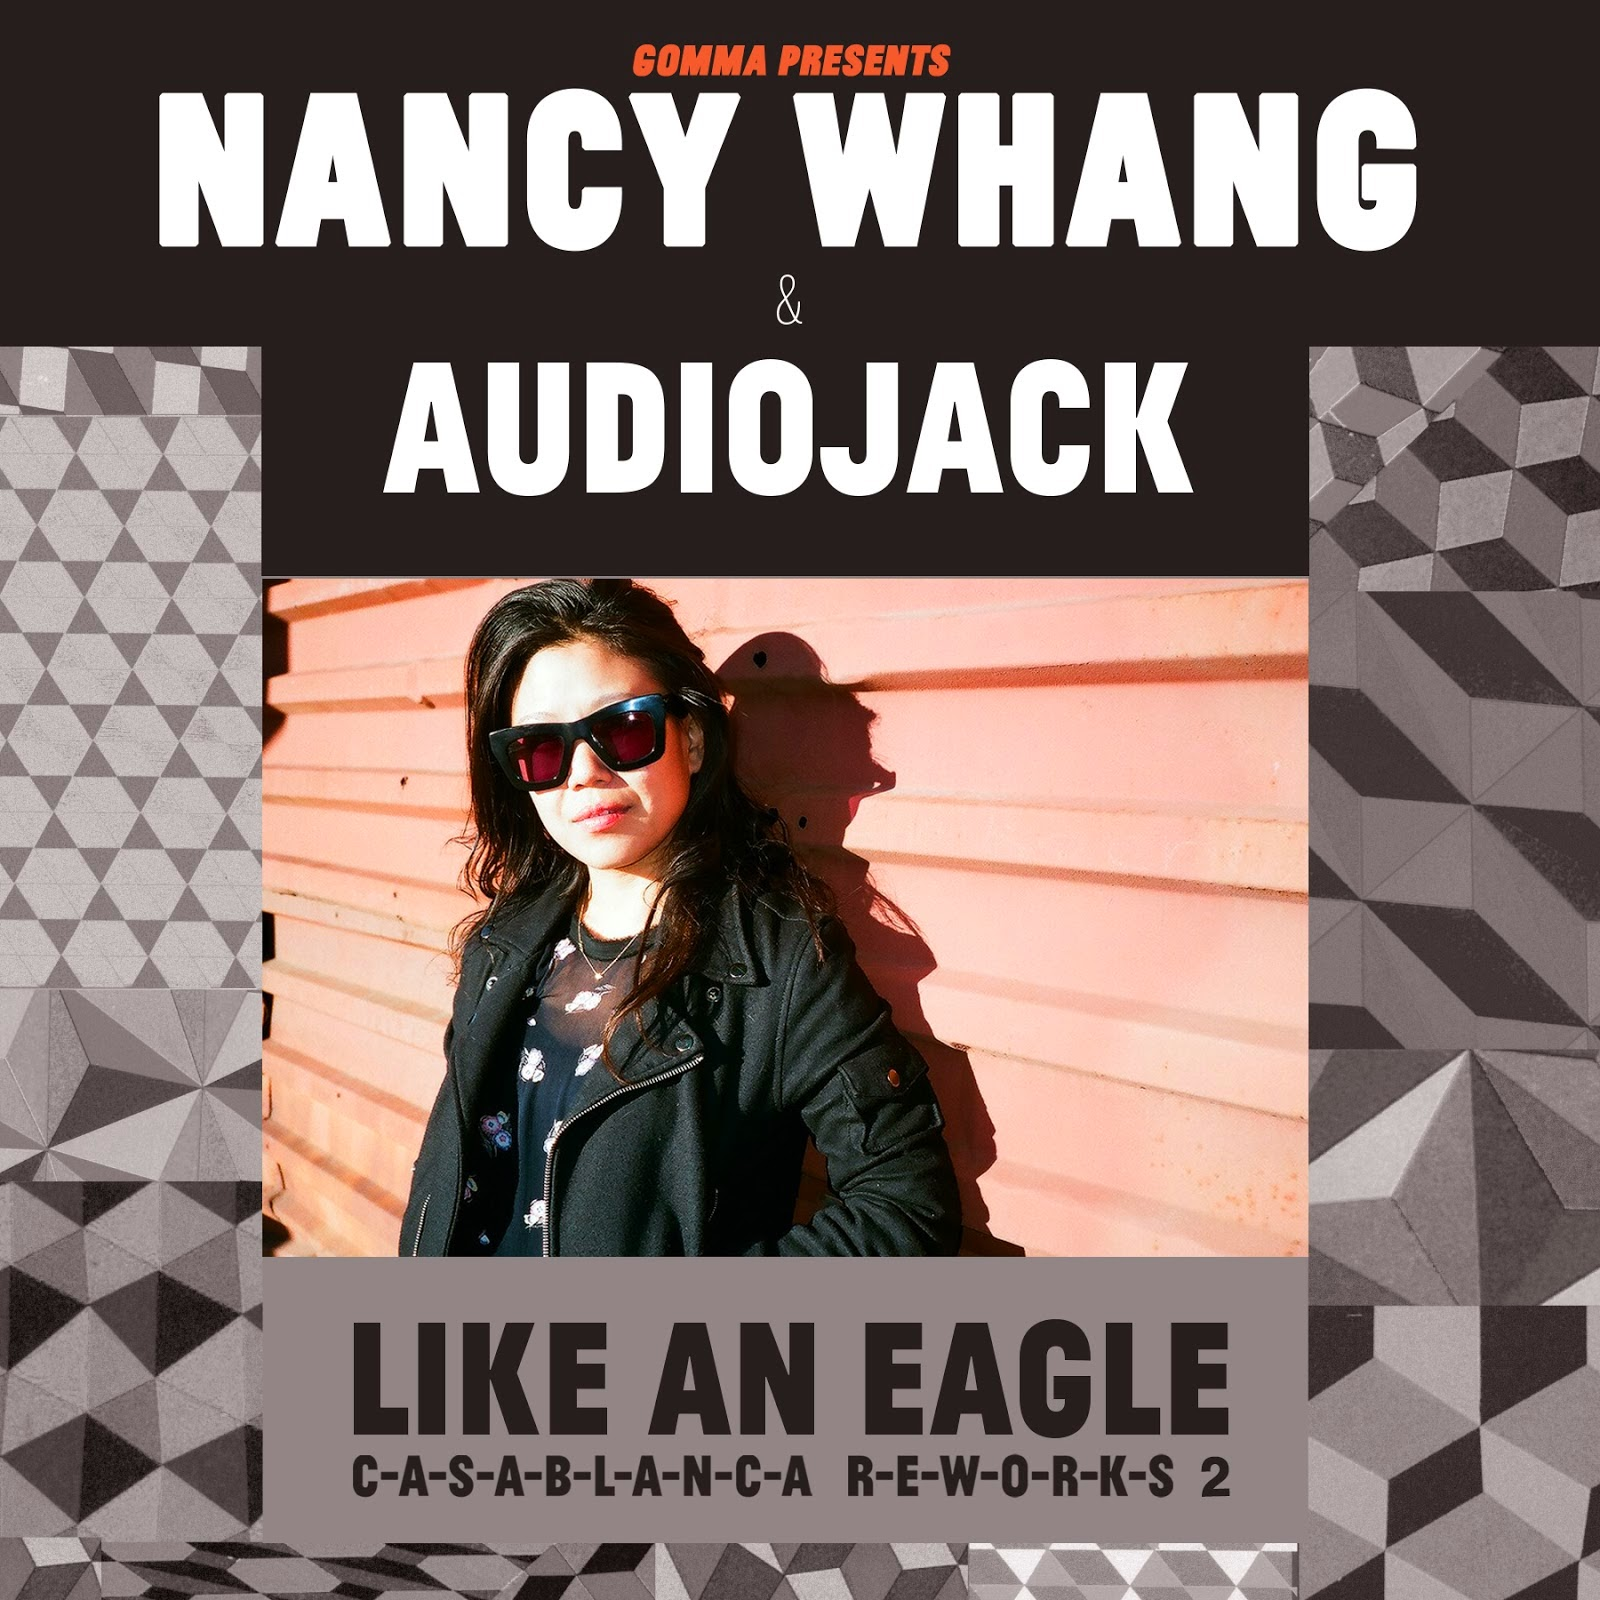 Nancy Whang & Audiojack - Like An Eagle